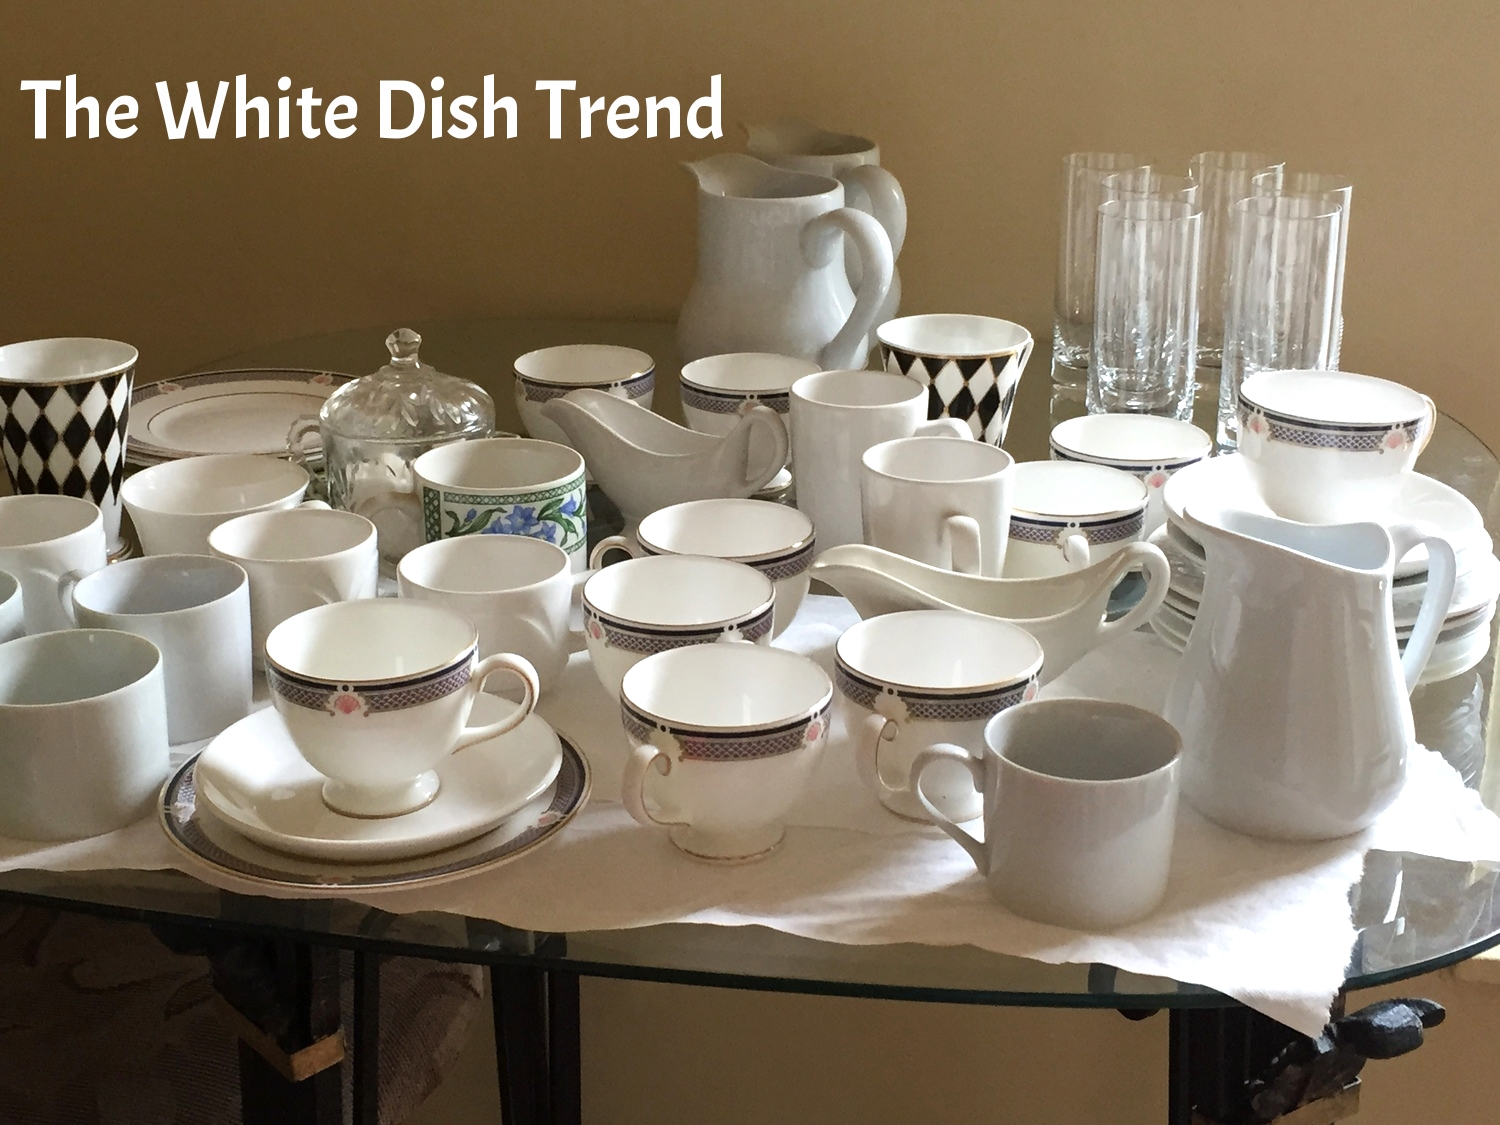 White dishes are back in style!